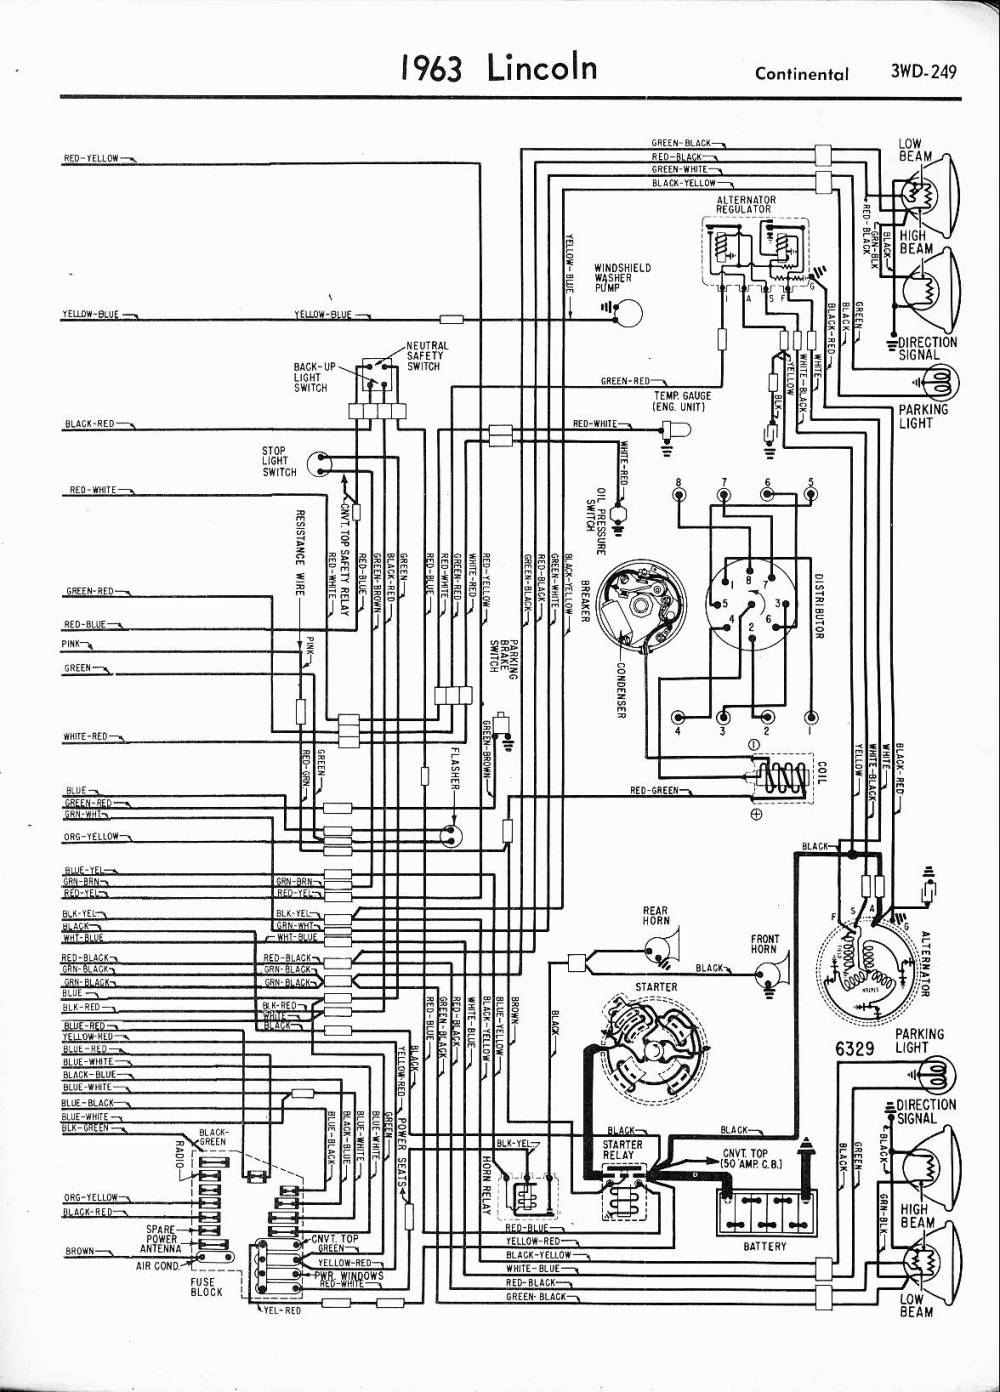 medium resolution of 1963 lincoln right half lincoln wiring diagrams 1957 1965 1963 lincoln right half 1996 lincoln continental power window